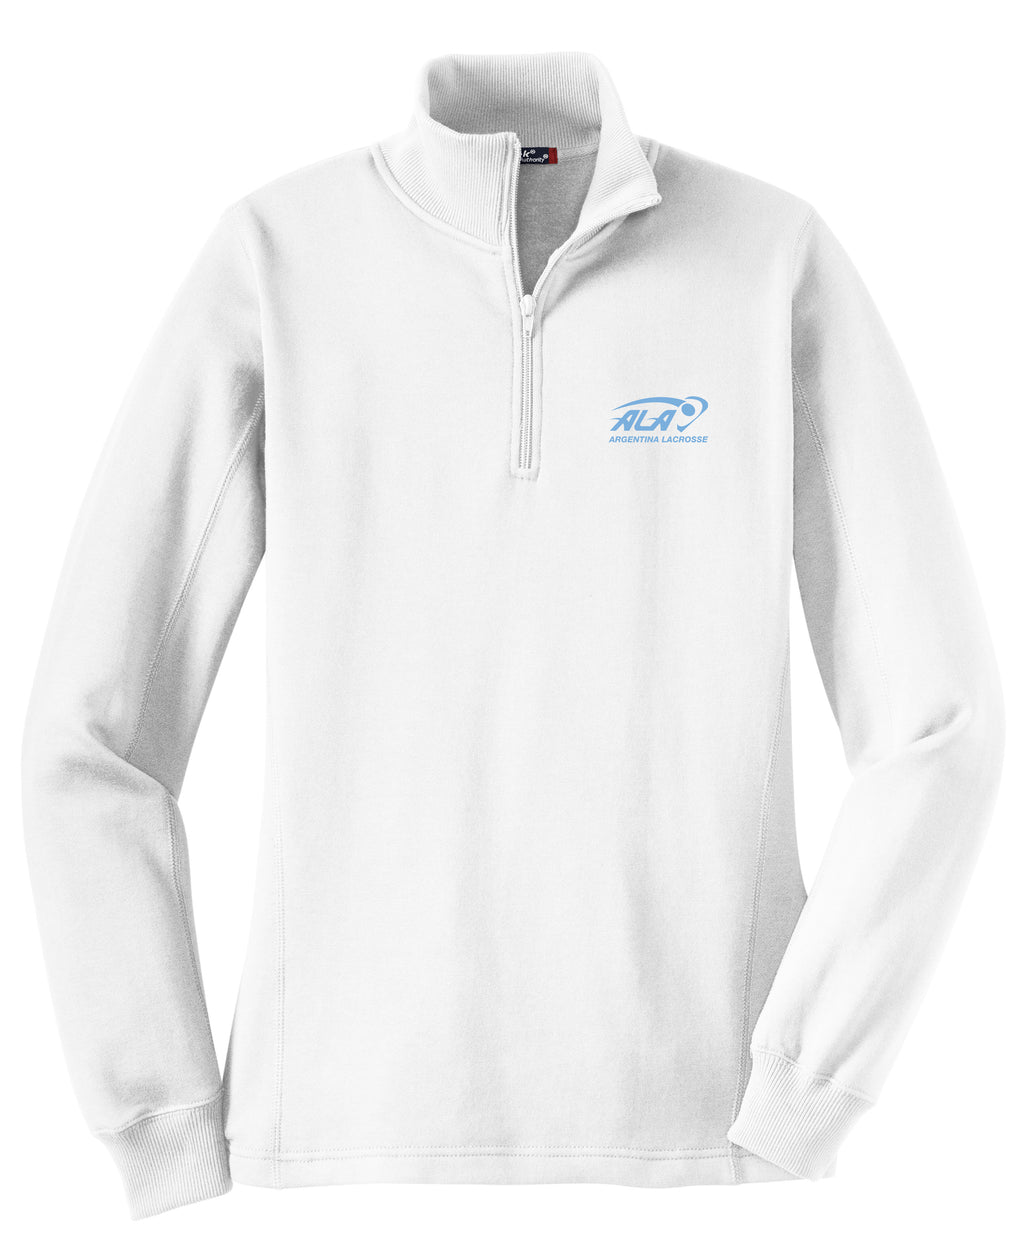 Argentina Lacrosse Women's 1/4 Zip Fleece